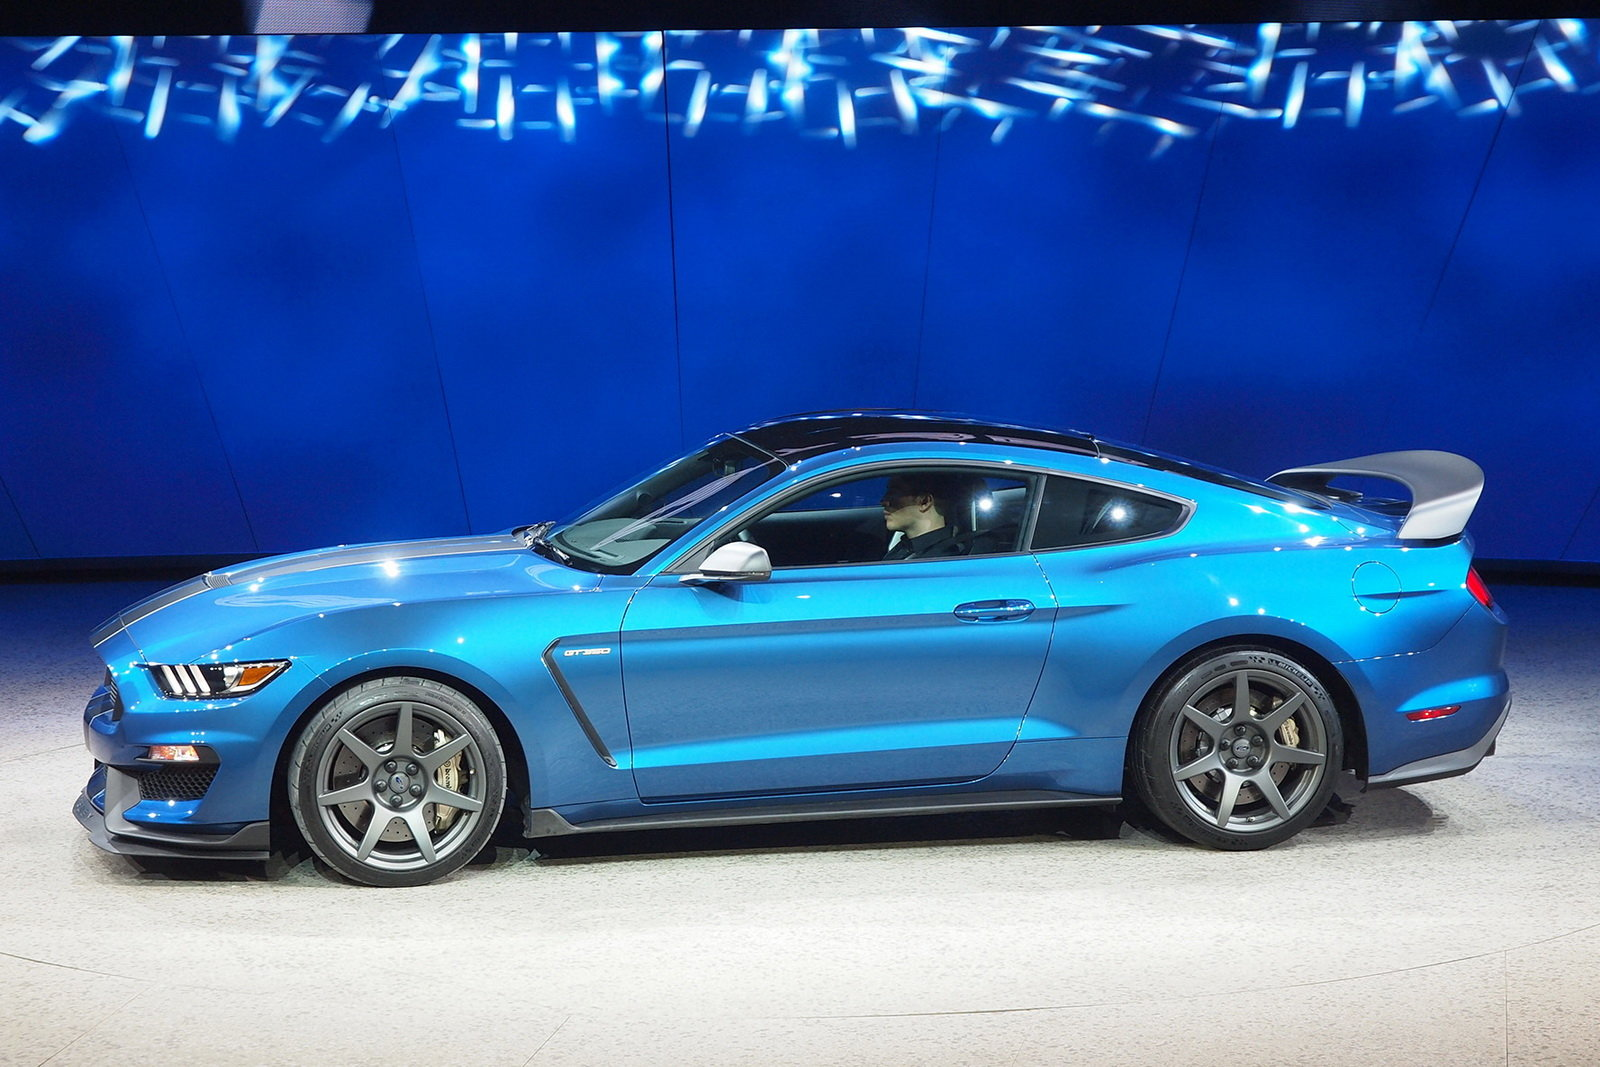 2016 Ford Mustang Shelby Gt350r Side Exterior (Photo 3 of 47)